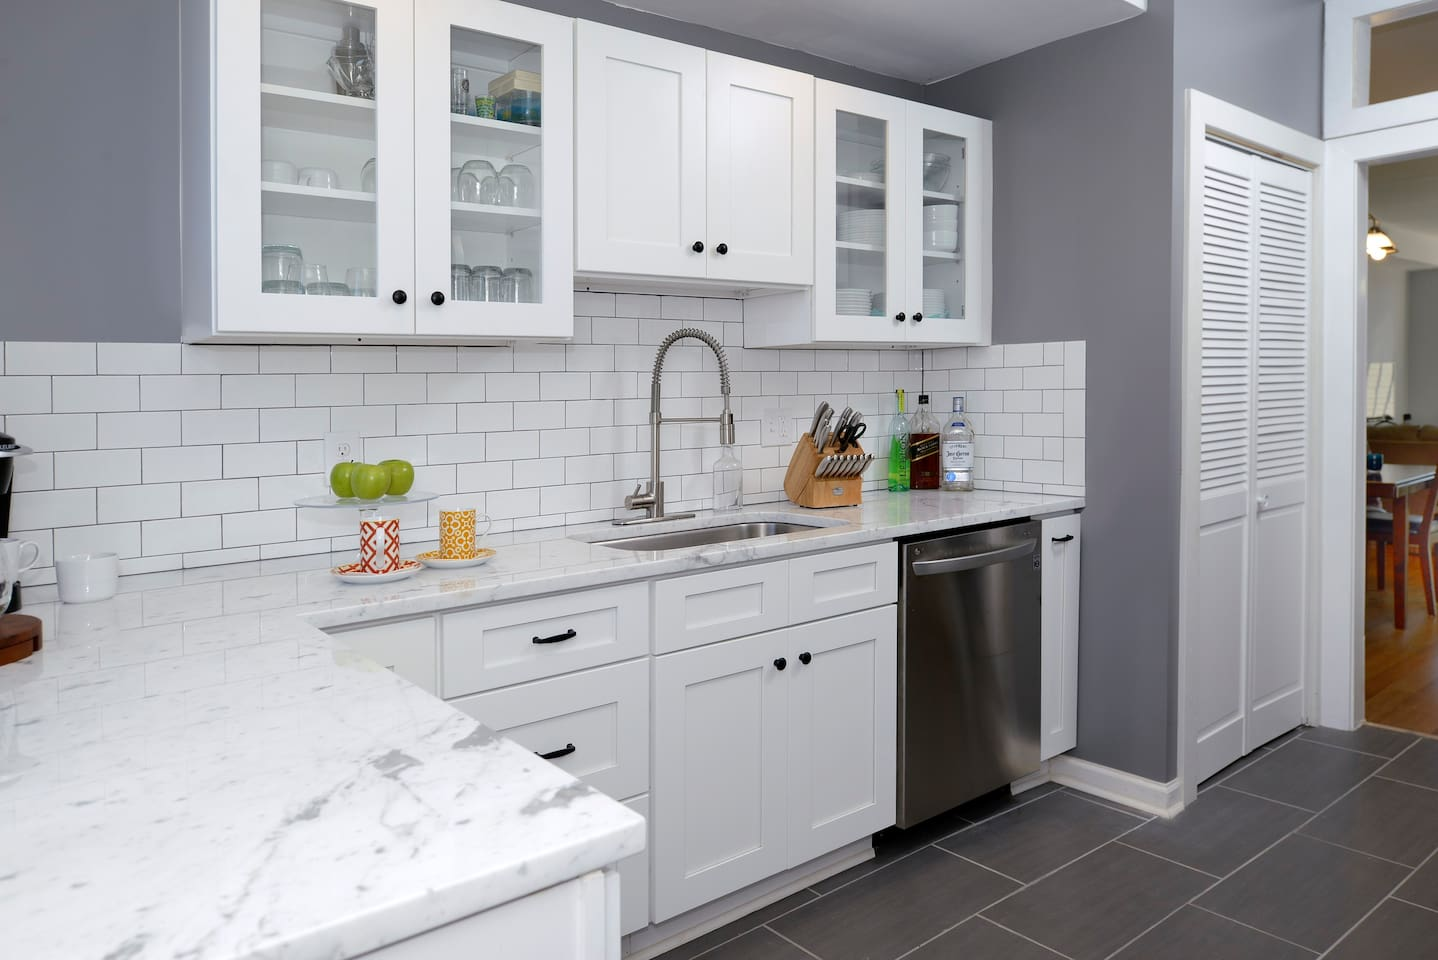 beautiful redone kitchen complete with a kurig coffee machine and an assortment of coffee pods!